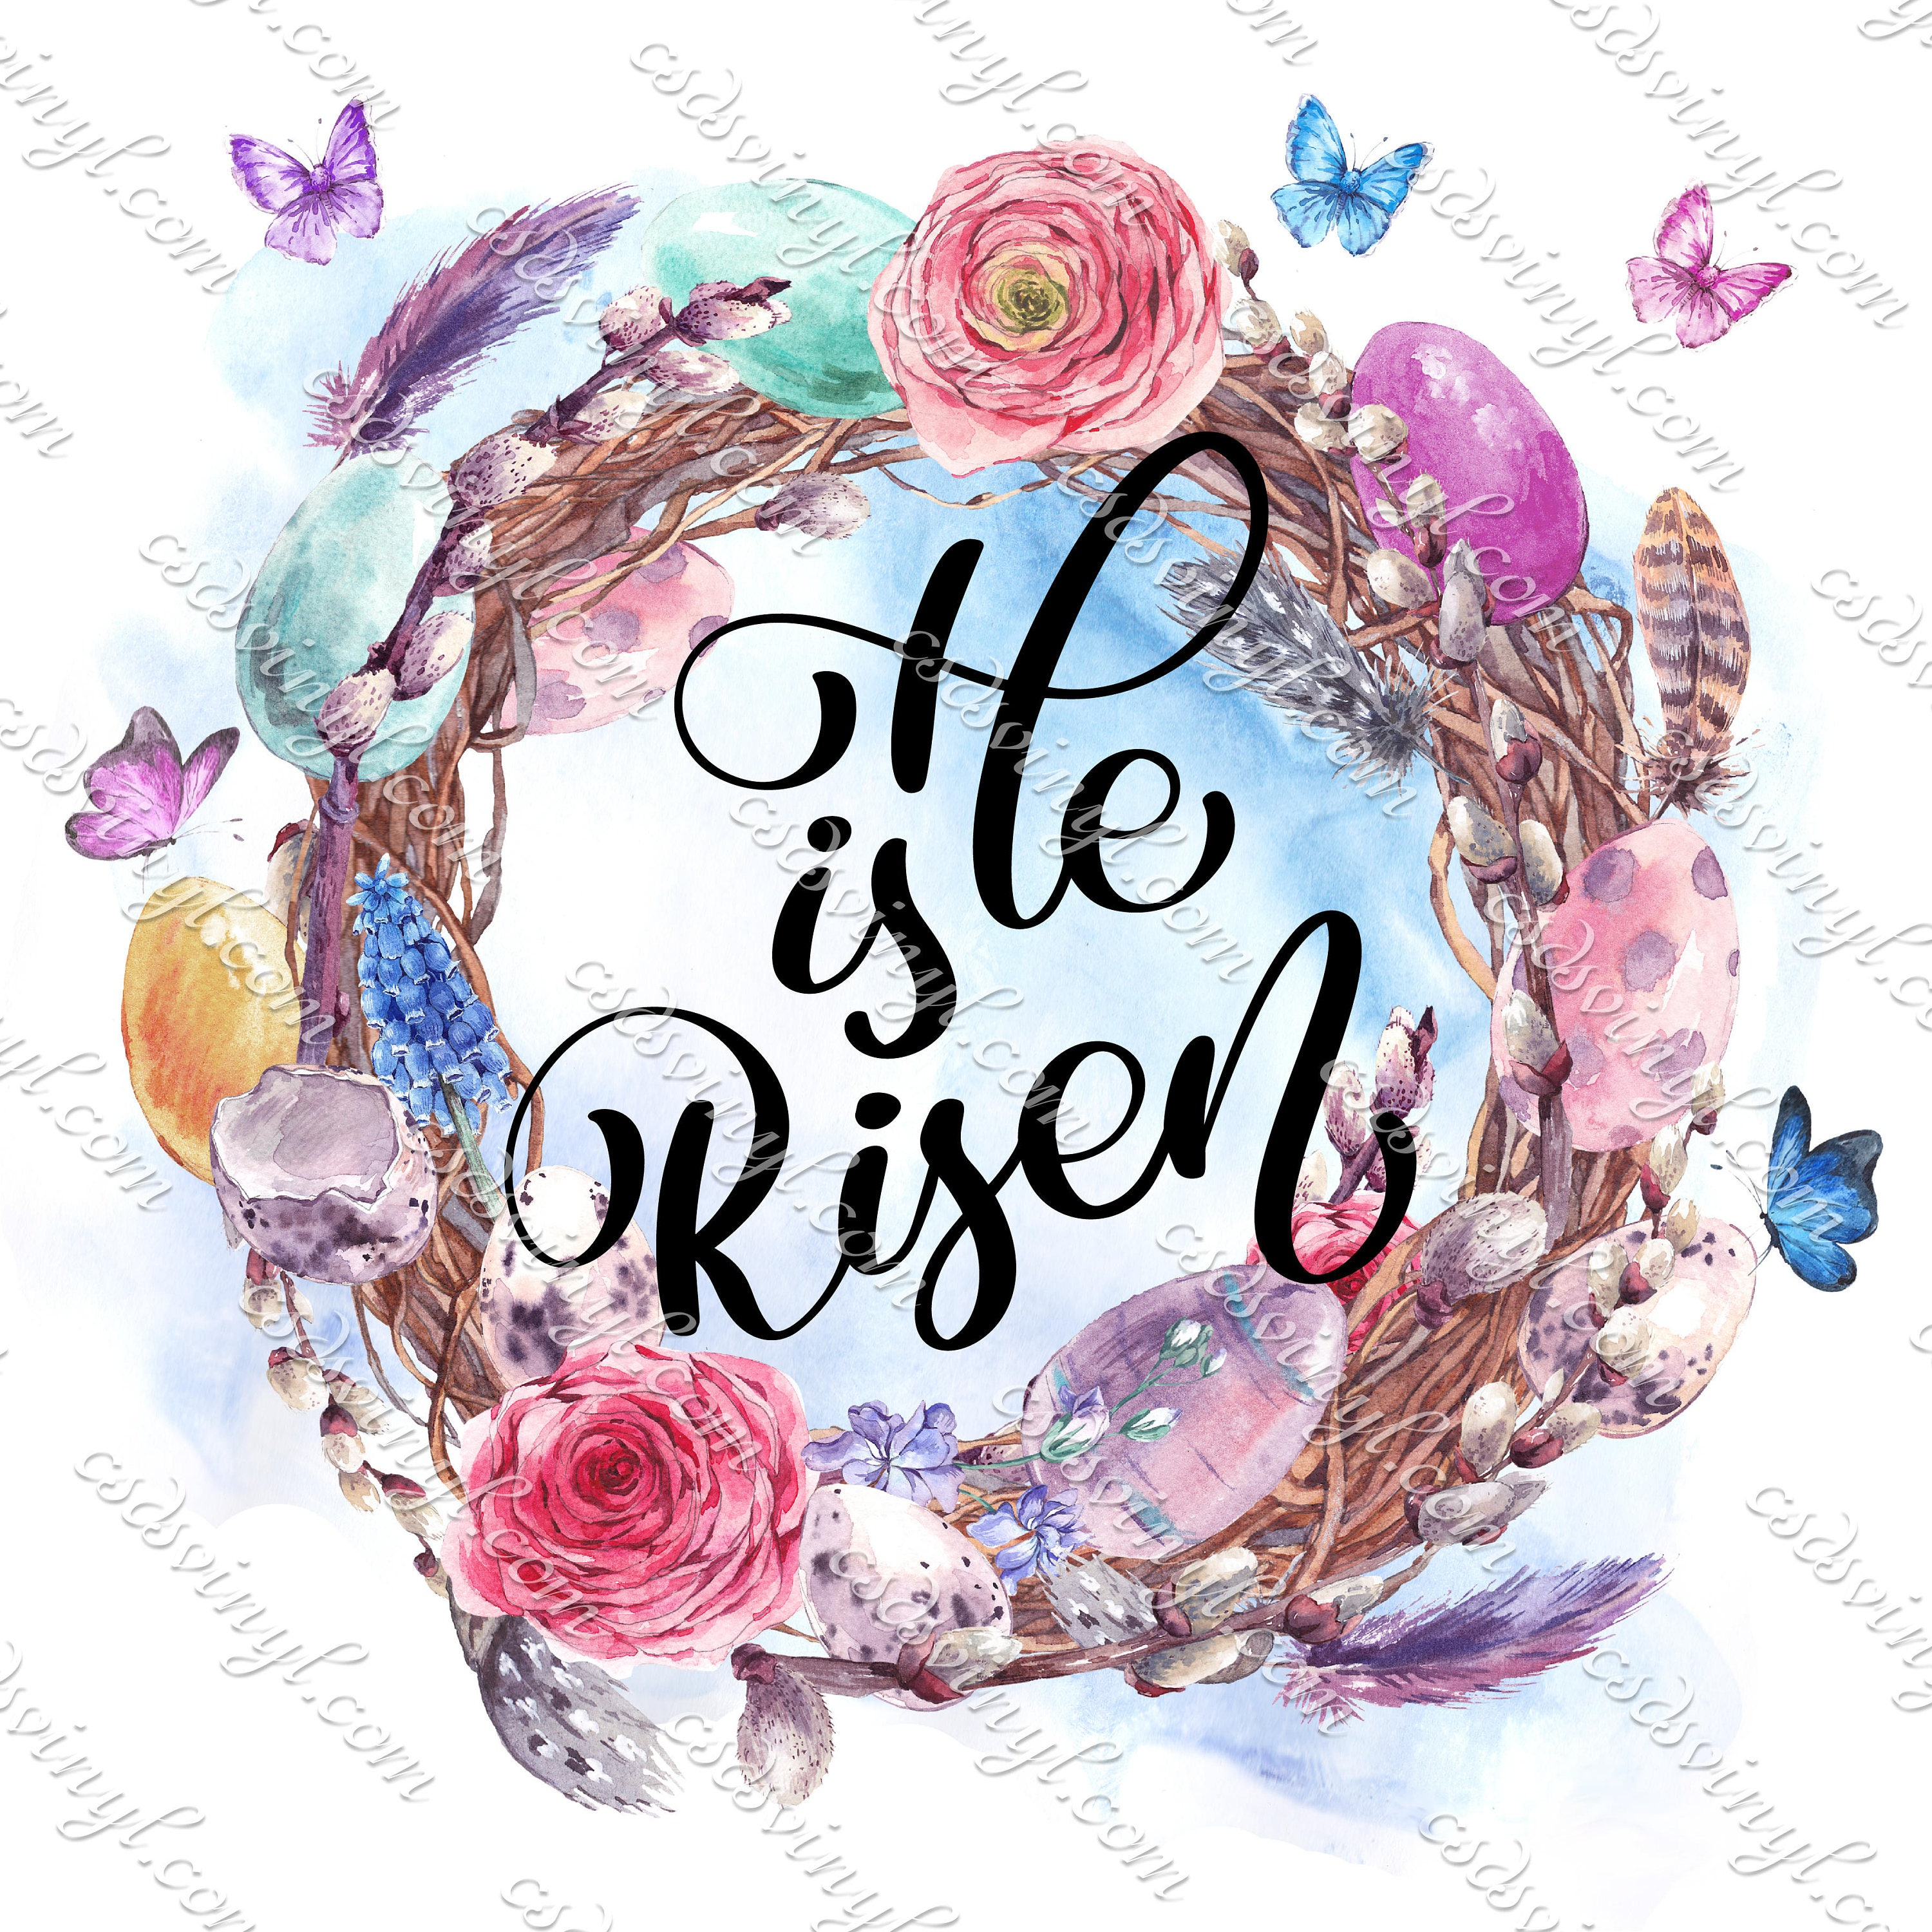 510ca373b04cb He Is Risen Sublimation - Ready To Press Iron-On - Easter Risen Image  Transfer - Easter He Is Risen - Faith Tshirt Transfer - SUB0012